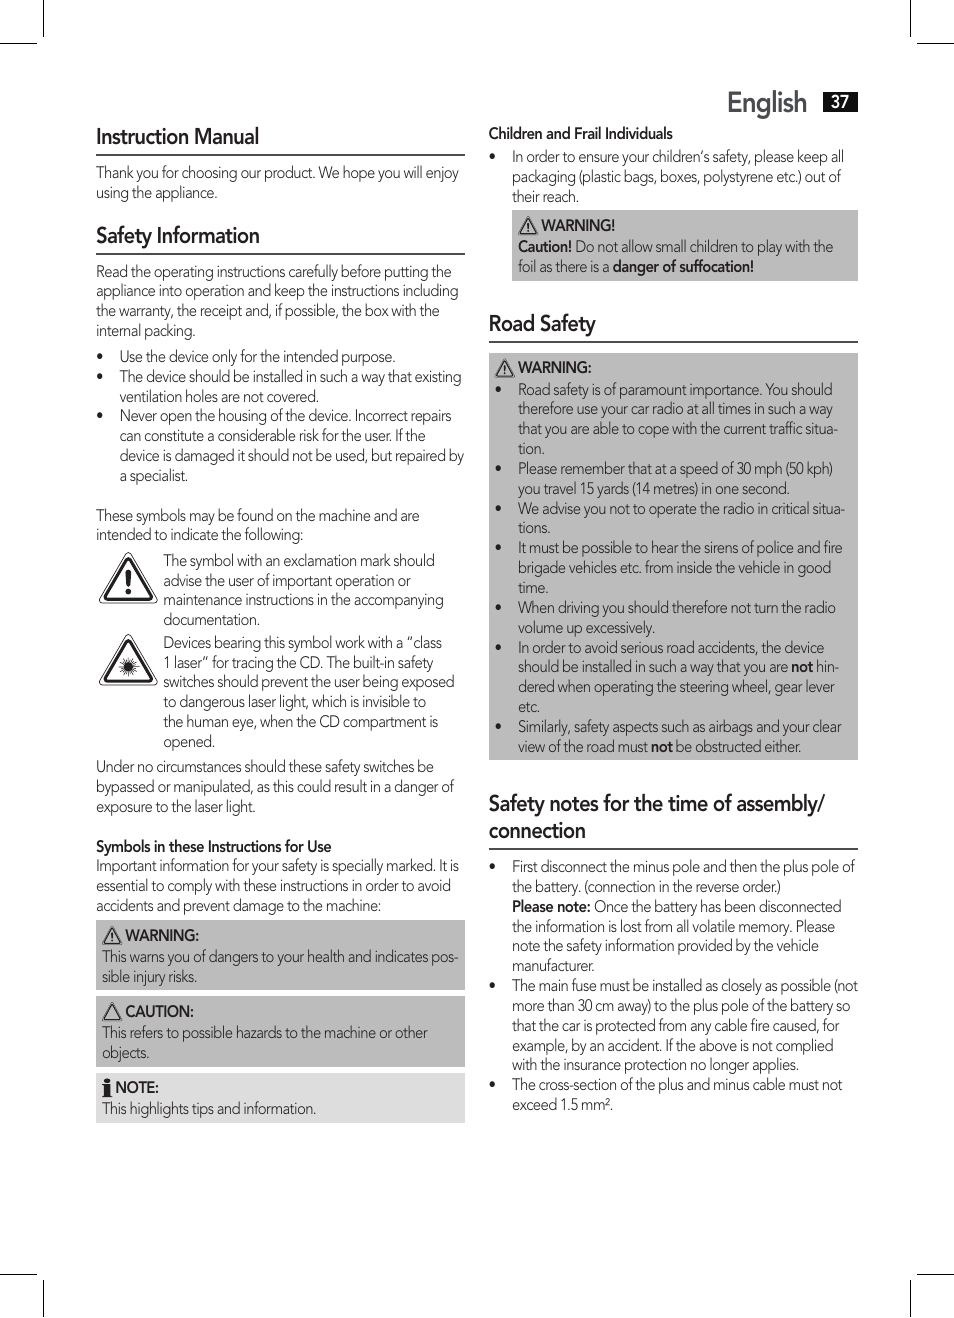 English Instruction Manual Safety Information Aeg Ar 4027 Usb Cr